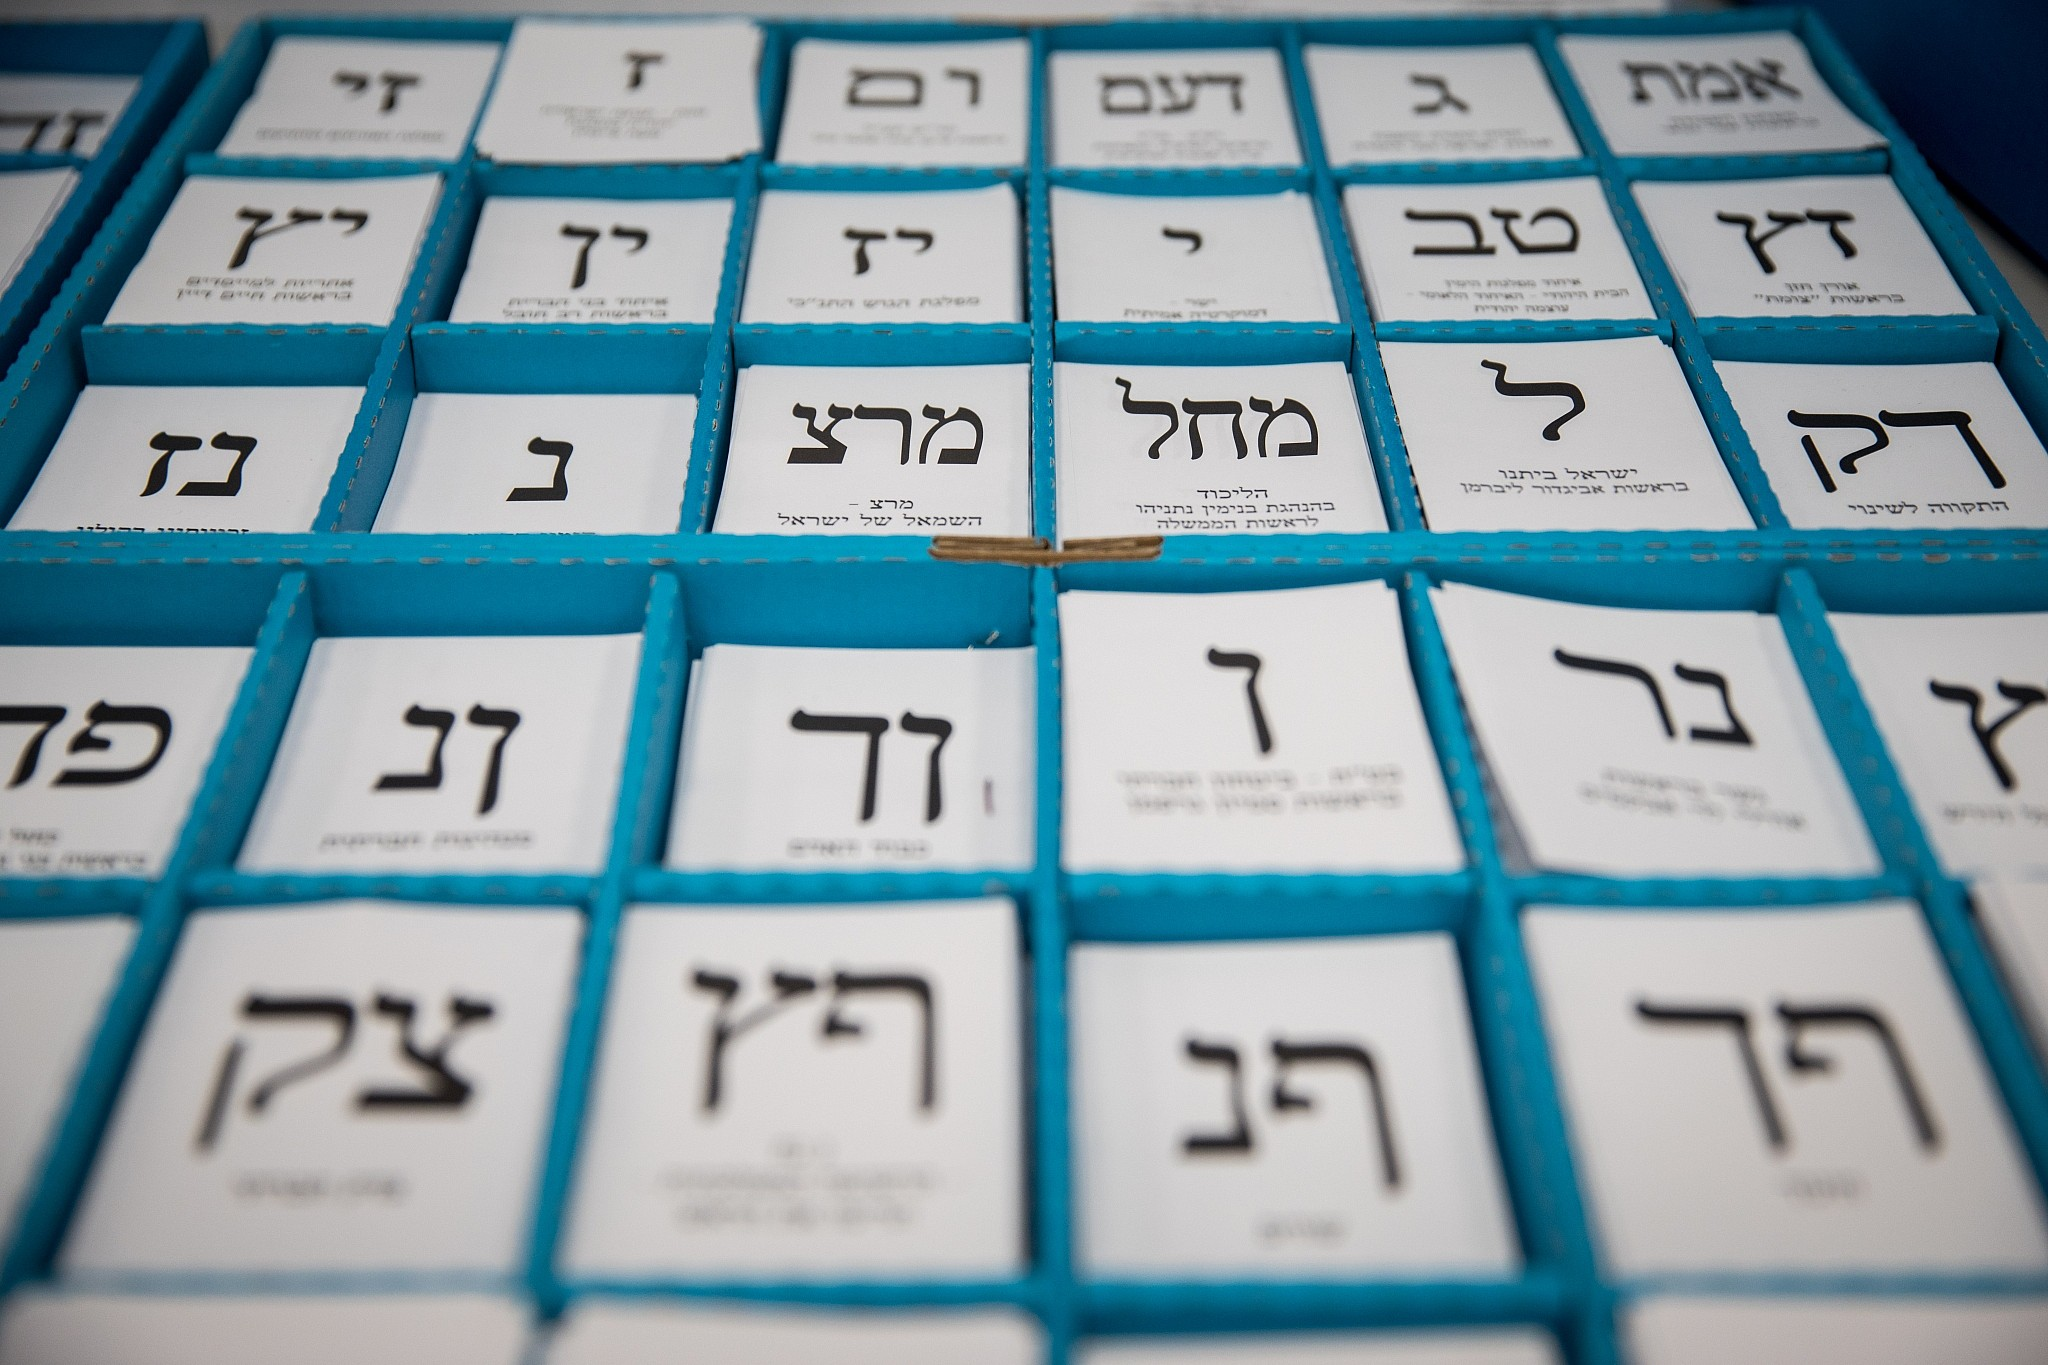 c9d2a850d8b A tray of ballot slips at a voting booth in Israel's parliamentary election  on April 9